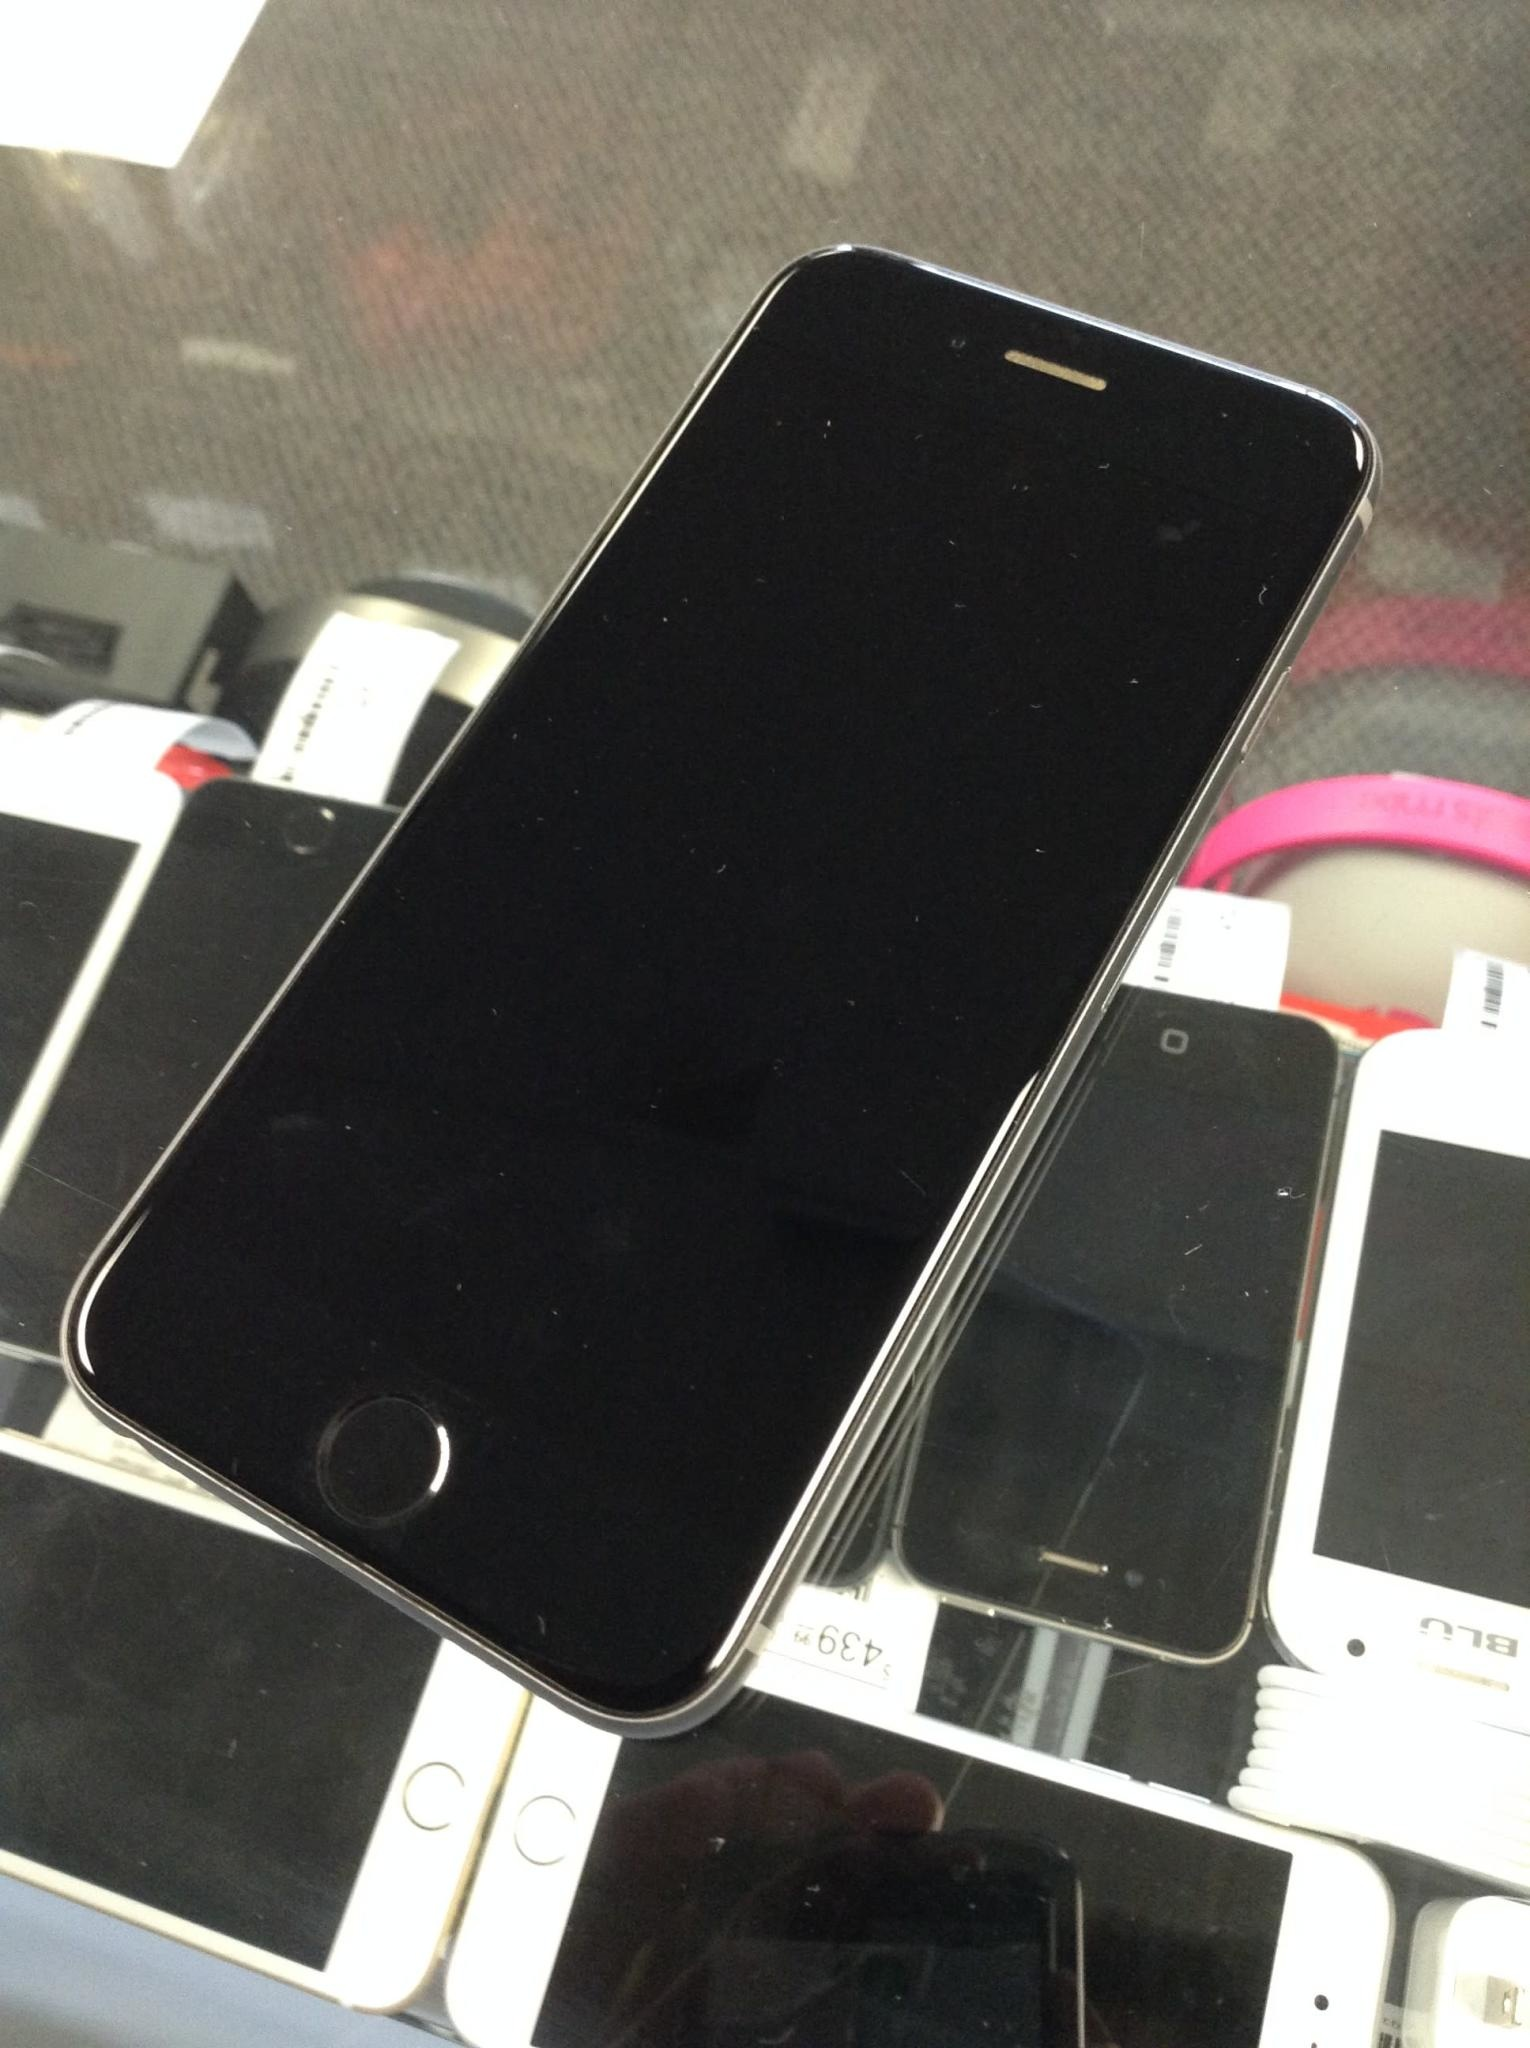 AT&T/Cricket Only - Apple iPhone 6s - 32GB - Space Grey